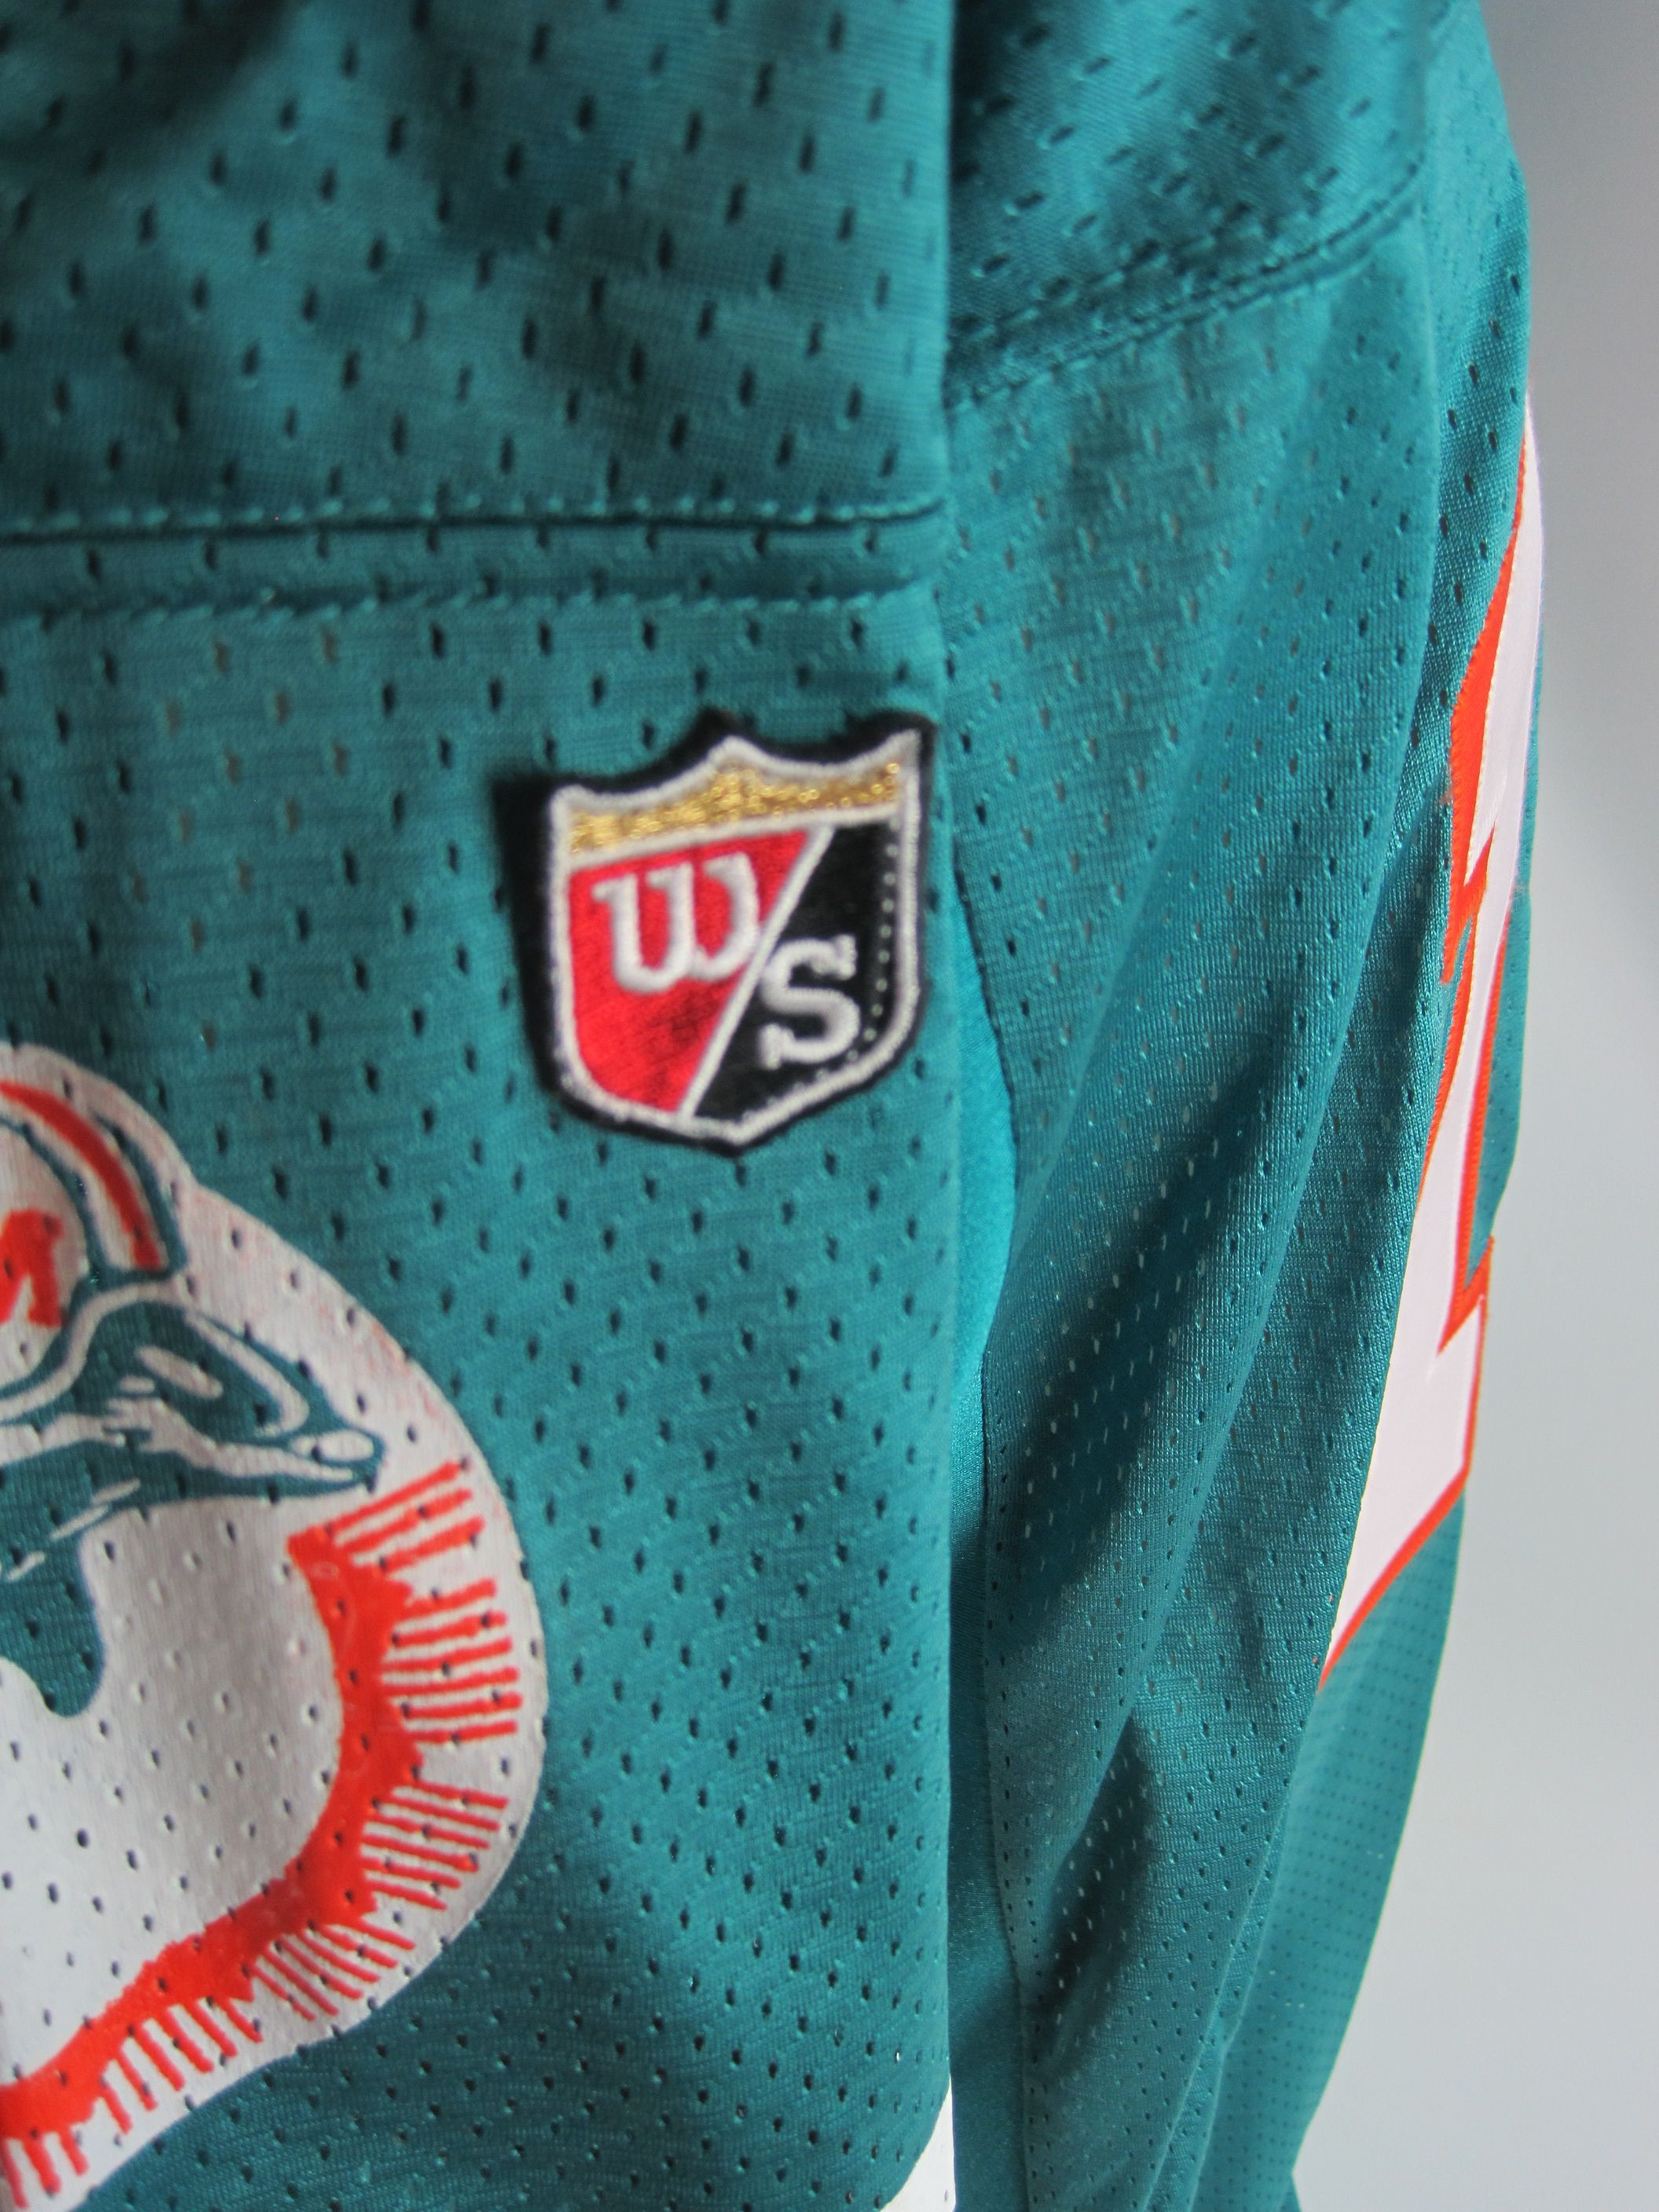 differently 0c428 27804 Lot Detail - Dan Marino Vintage Autographed Miami Dolphins ...